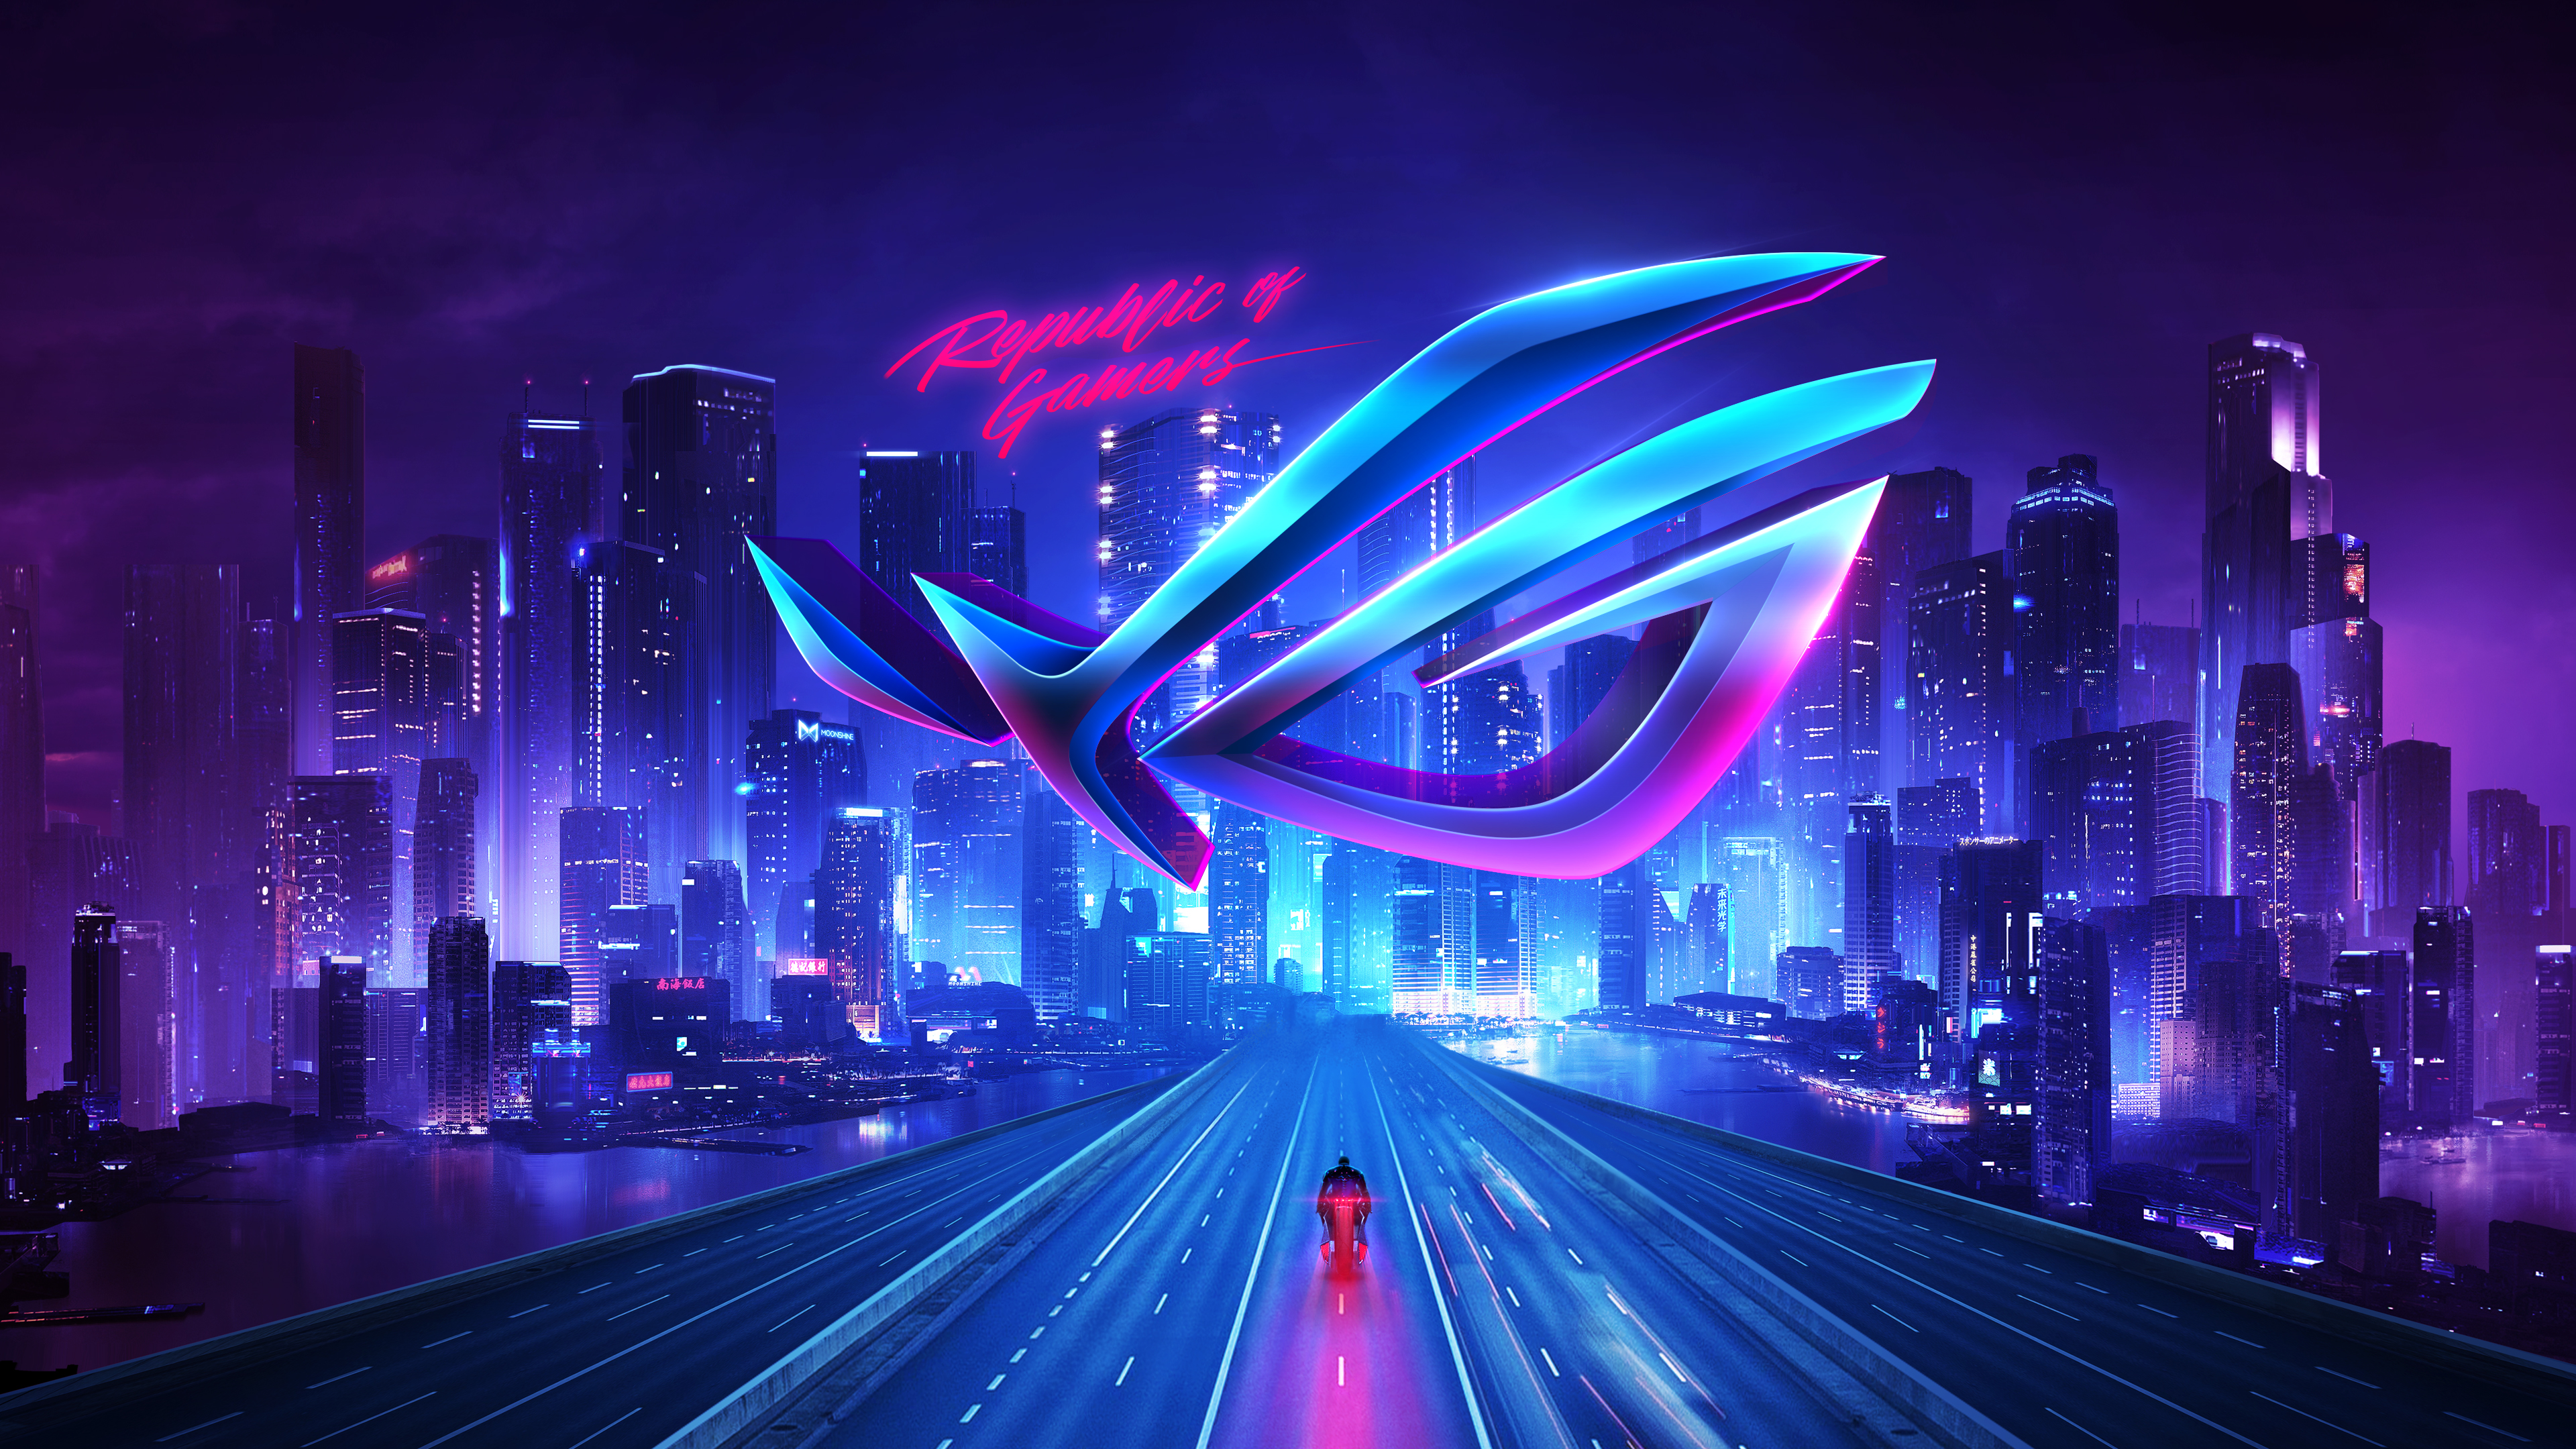 ASUS ROG, Republic of Gamers, Neon, City, 4K, Technology